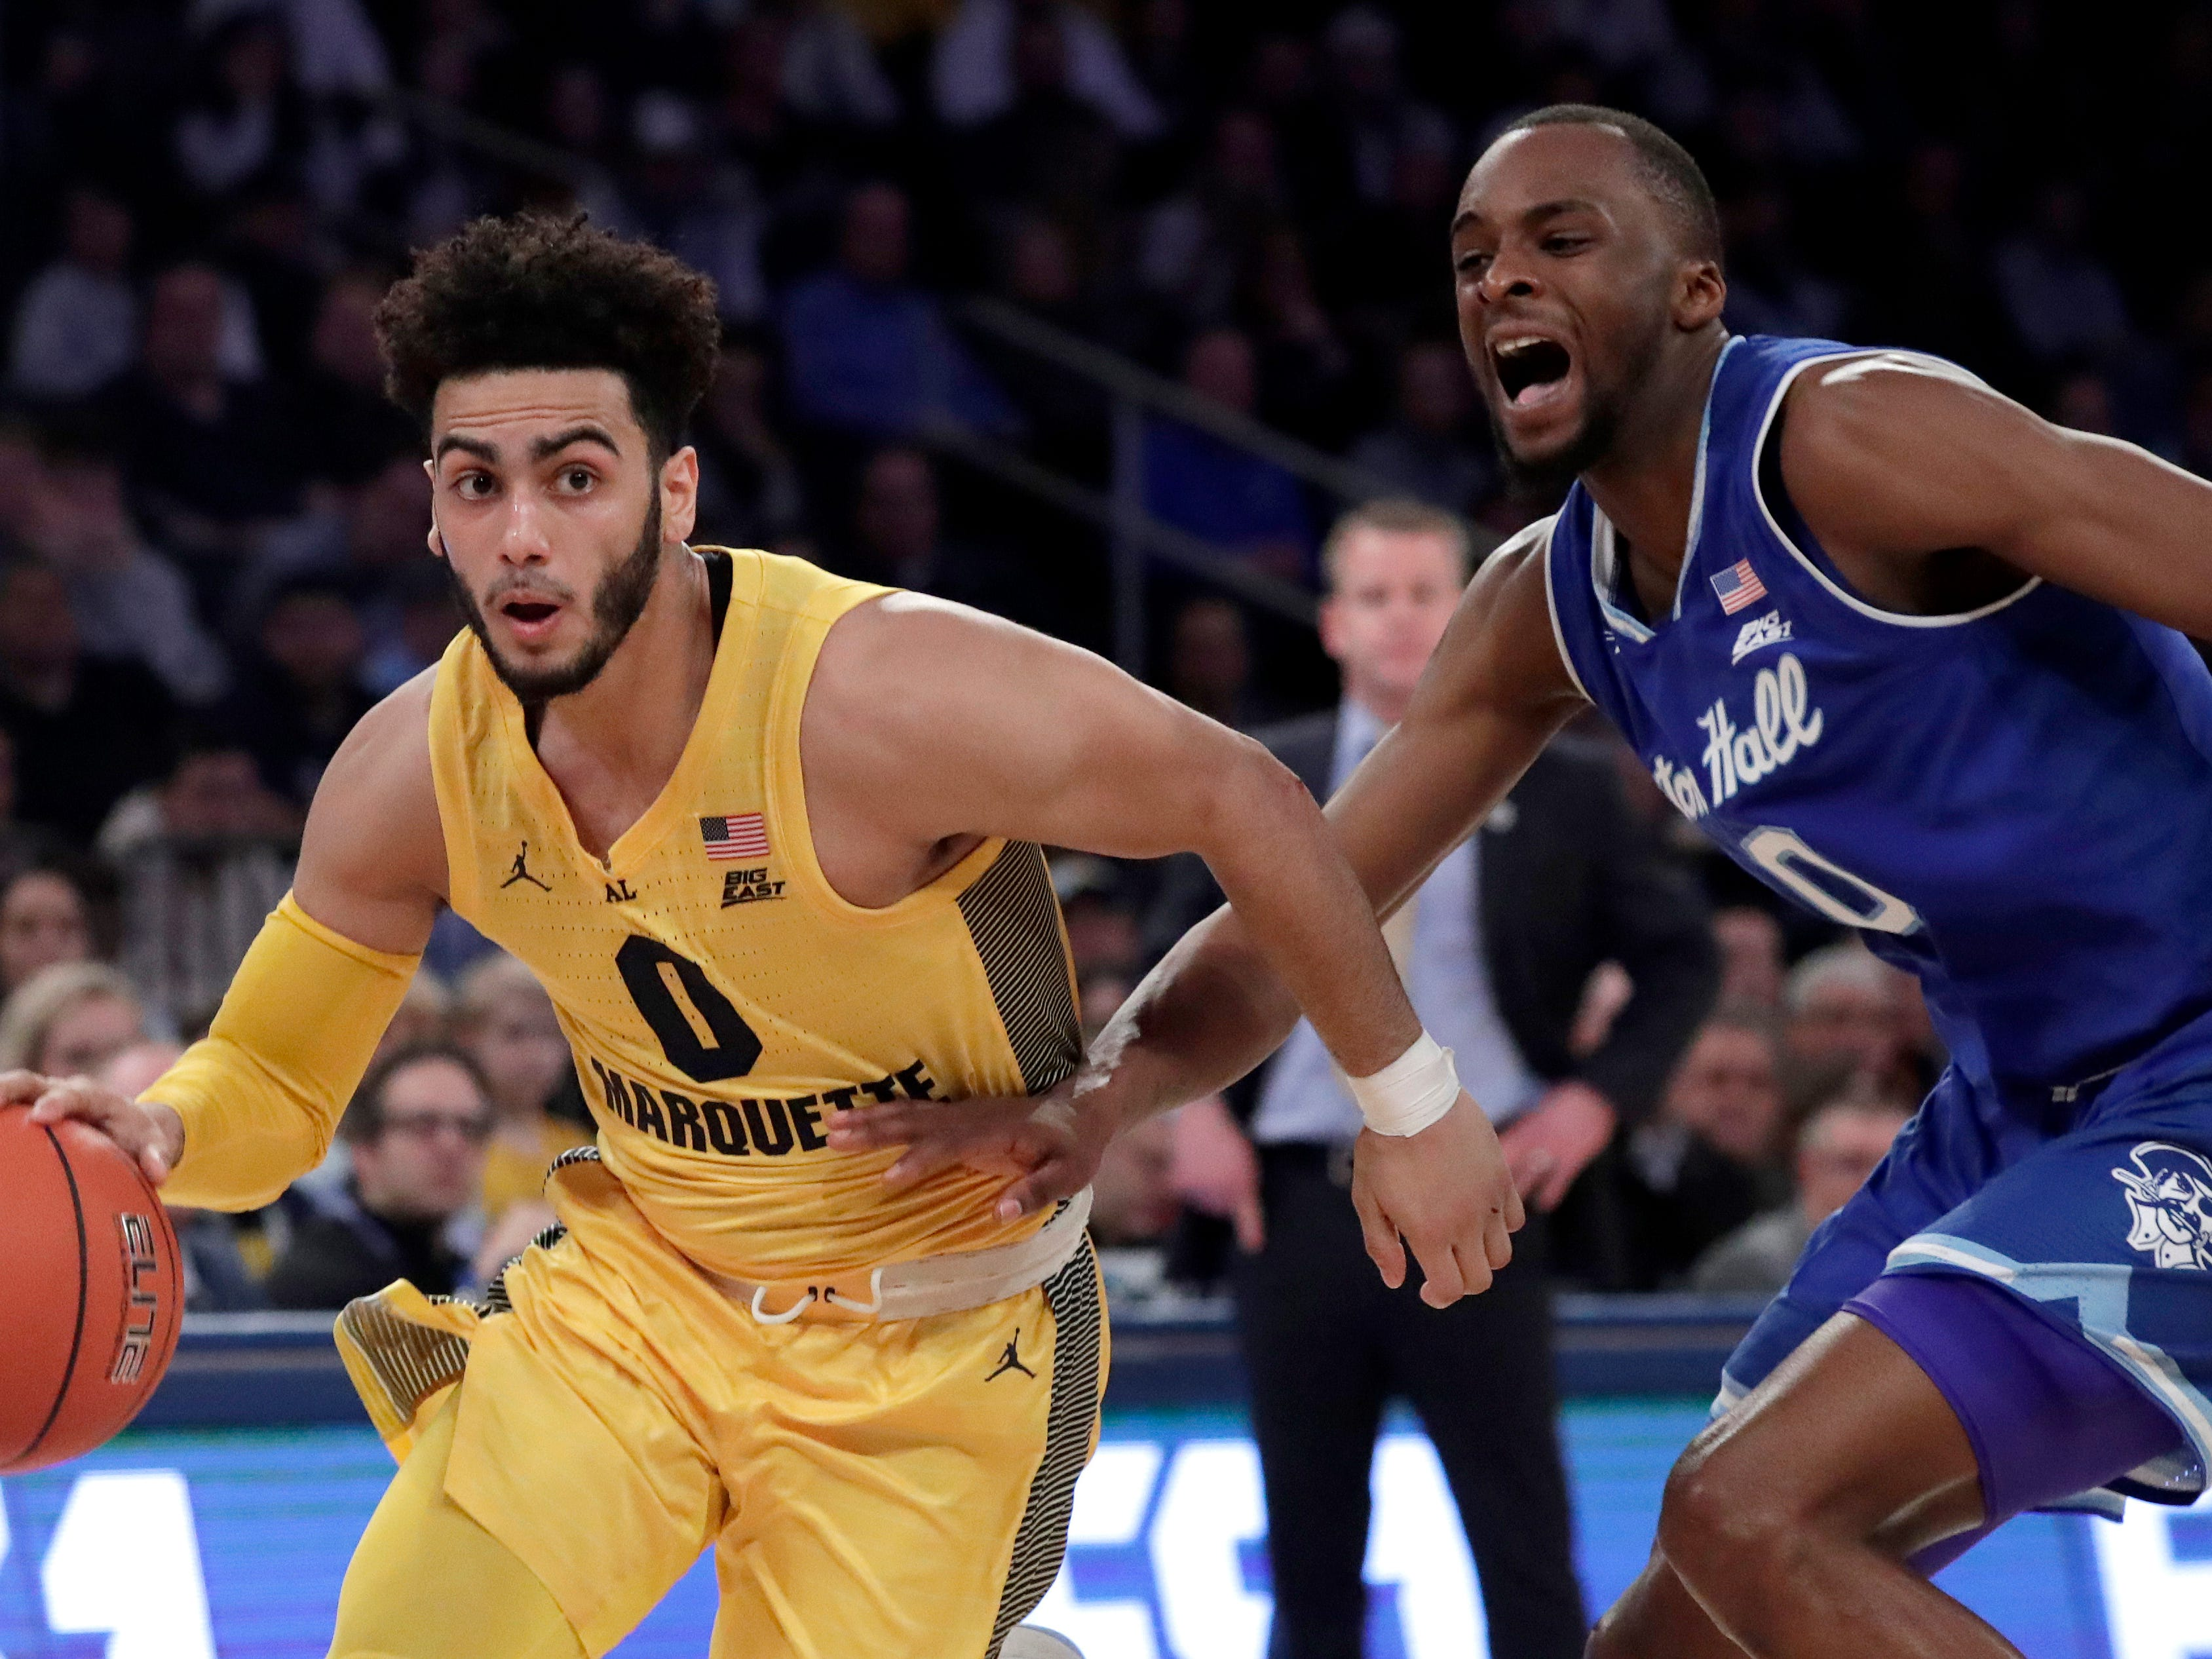 Marquette guard Markus Howard drives past Seton Hall guard Quincy McKnight.